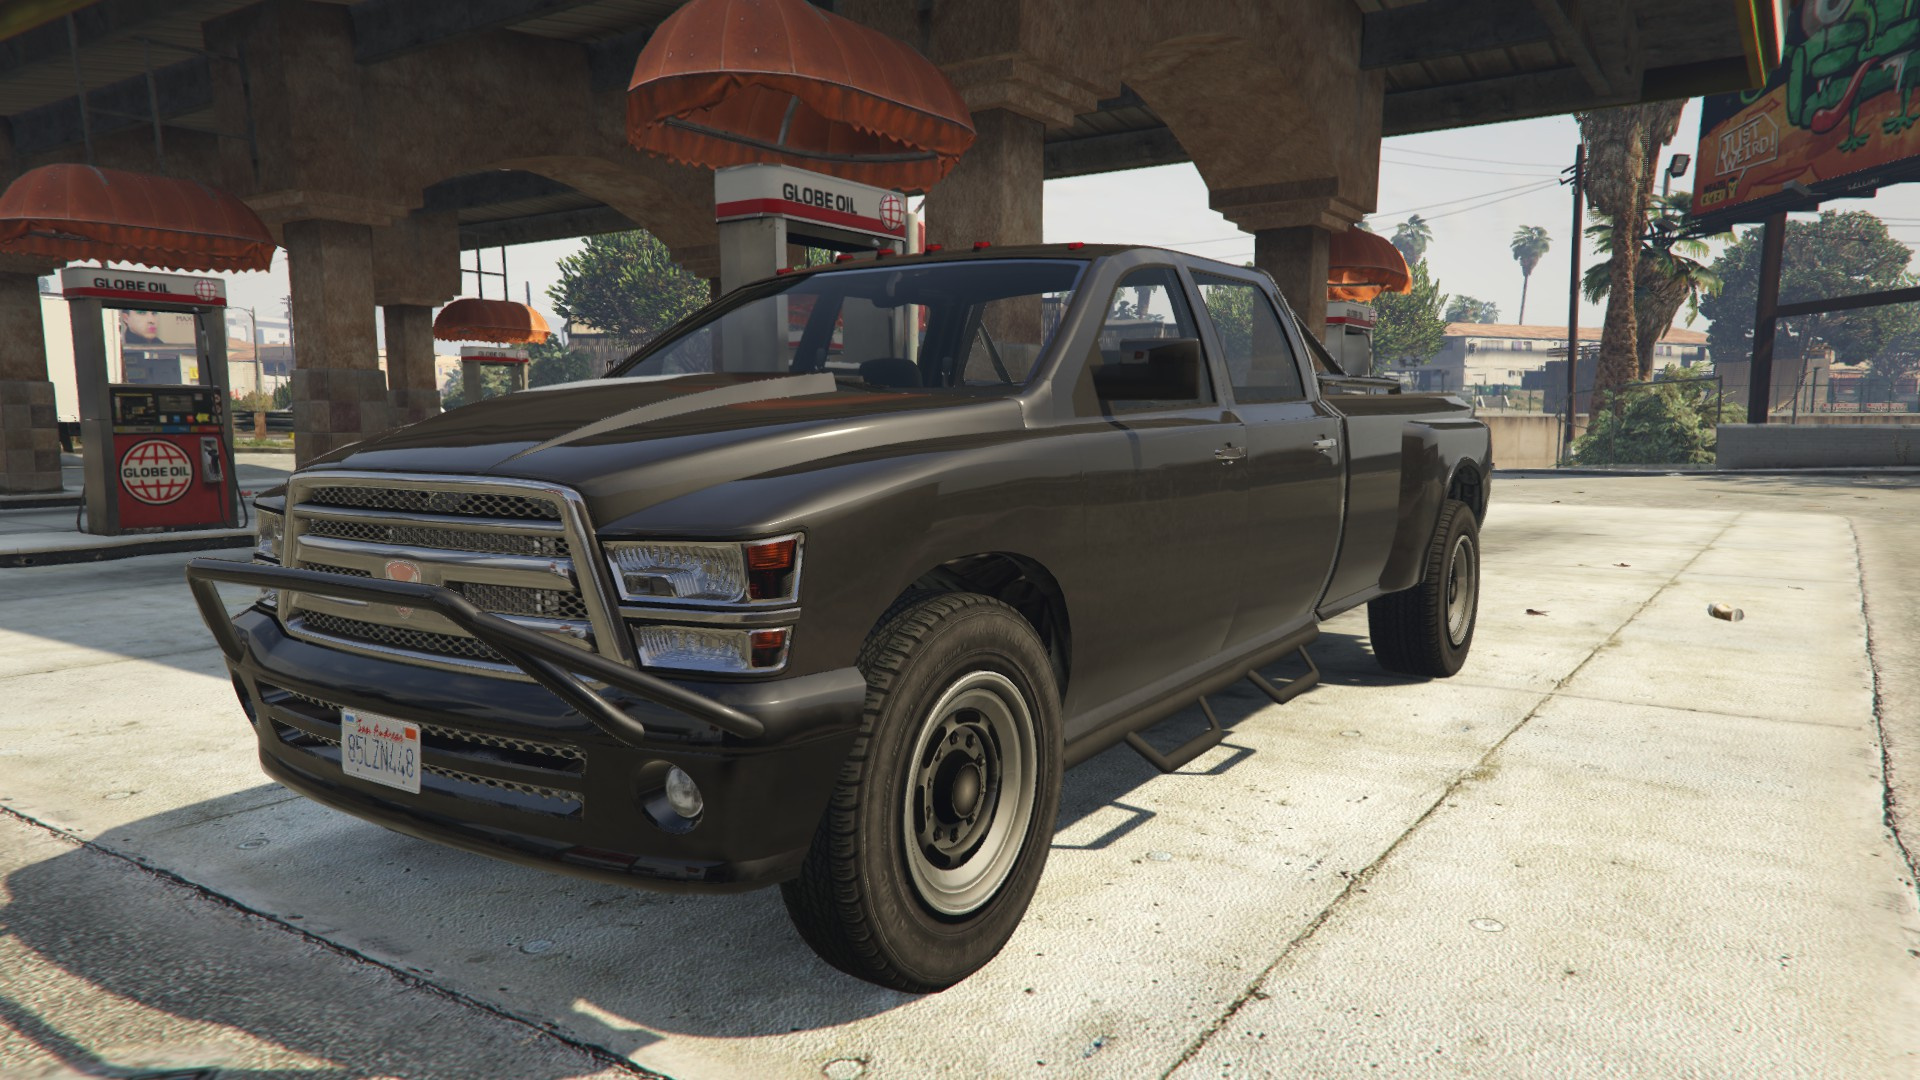 Bravado Bison Gta 5 Dually Crew Cab...